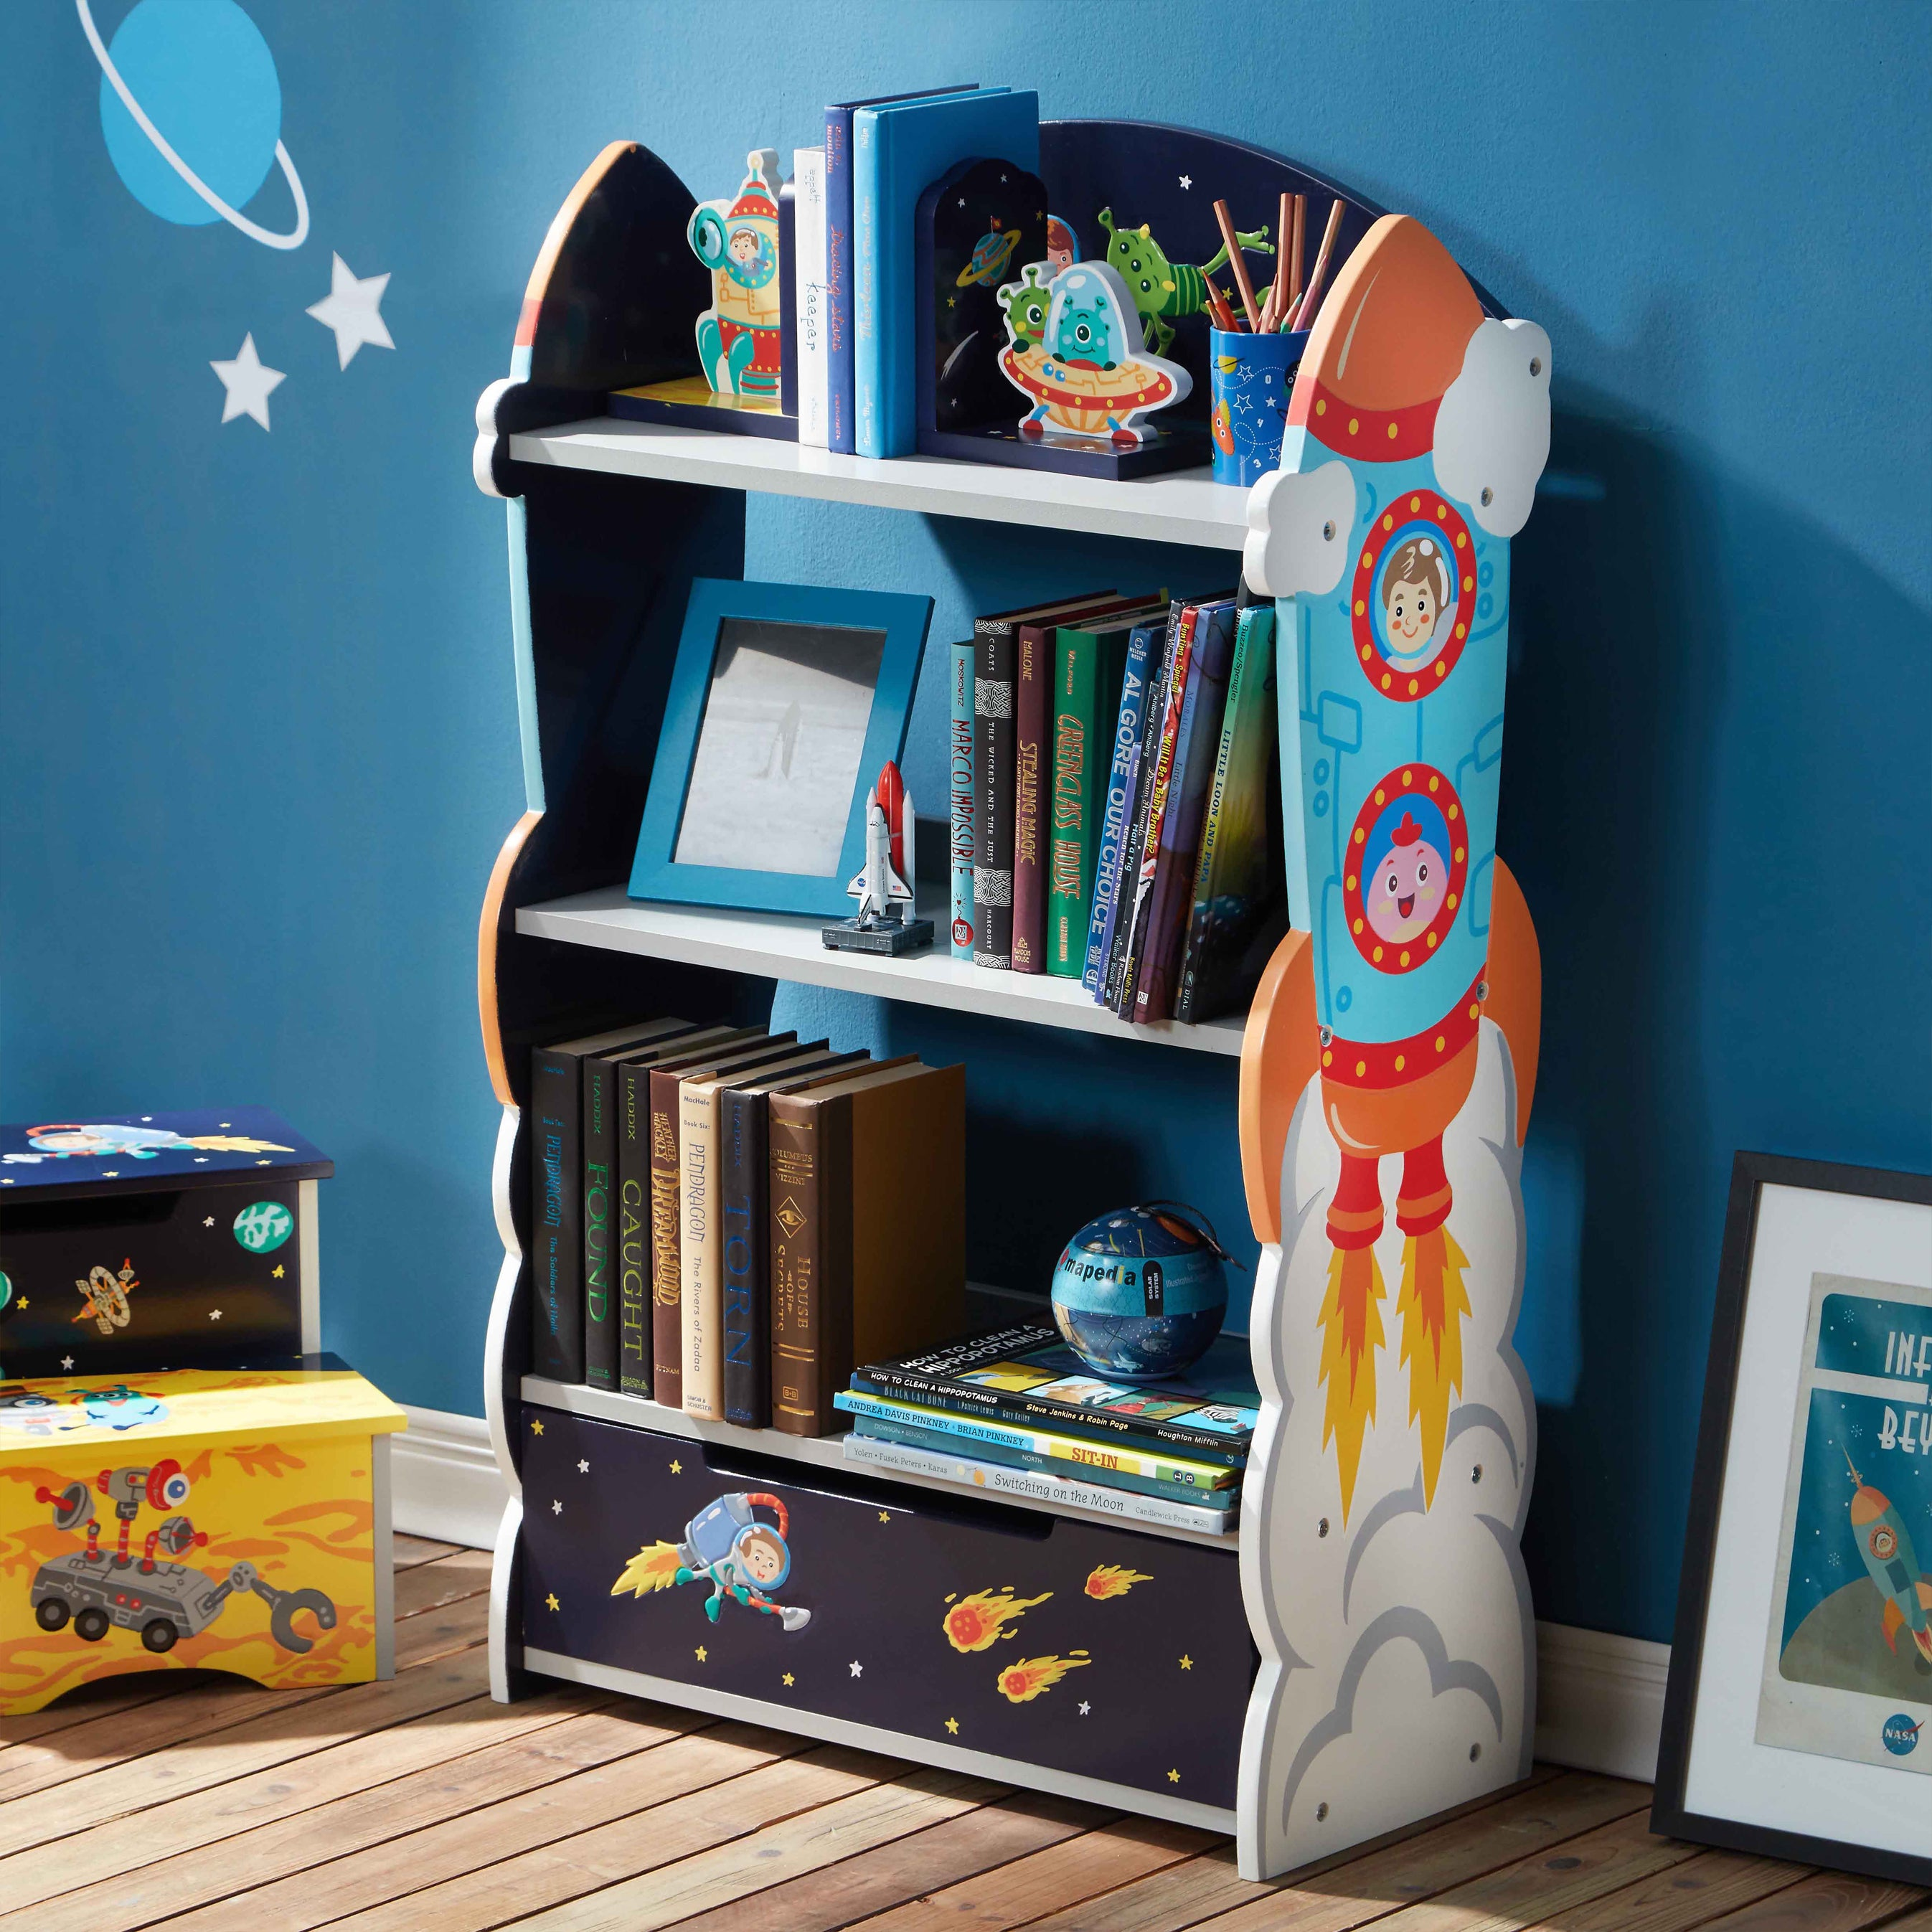 navy campaign bookshelf design cache new small harbor bookcase midnight mist wood baby blue home